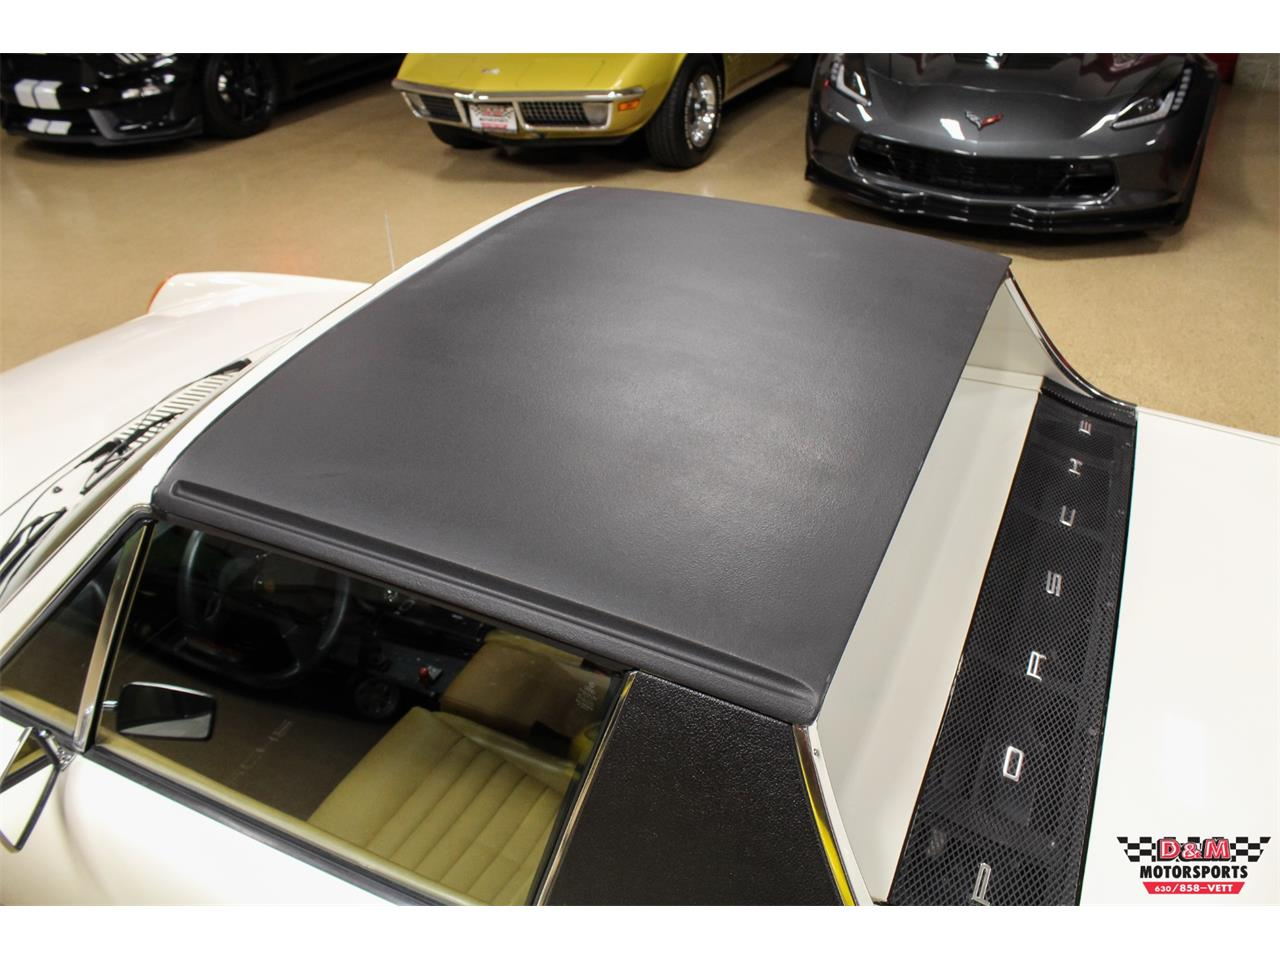 Large Picture of '76 Porsche 914 located in Glen Ellyn Illinois - $29,995.00 Offered by D & M Motorsports - P8QY